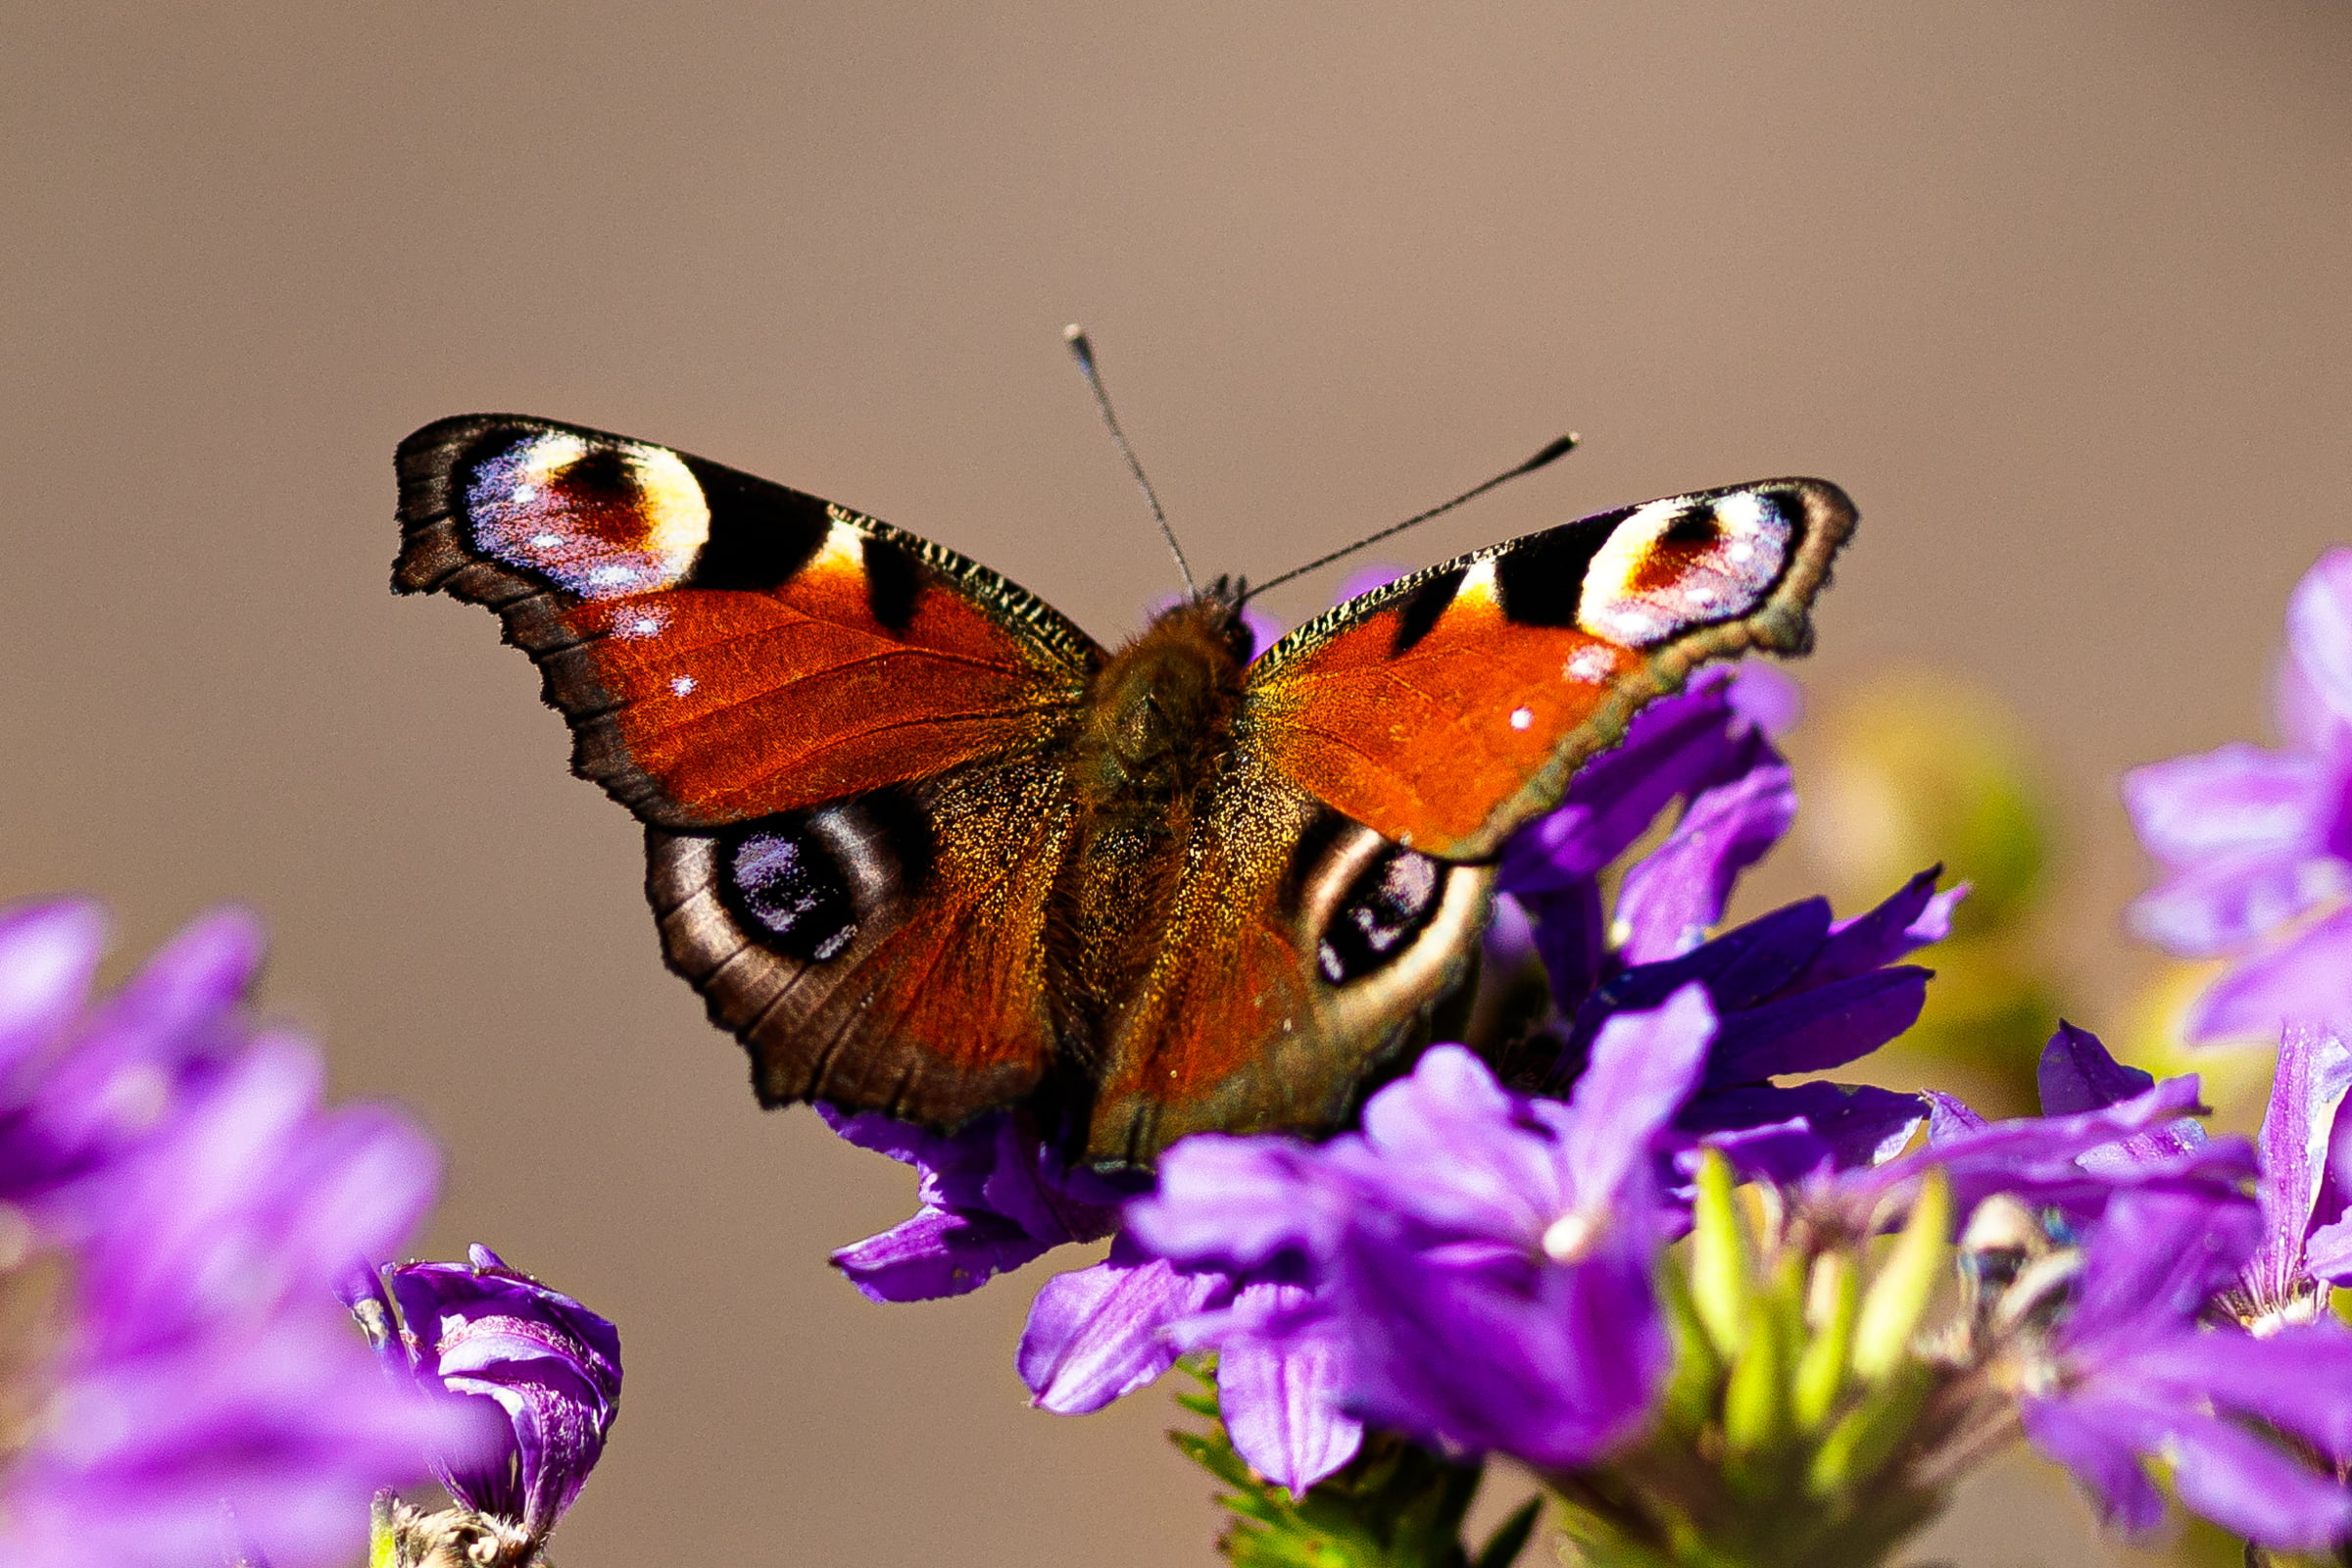 A close-up of a butterfly sitting on a purple flower, showing it's orange wings with markings that are reminiscent of a pair of eyes.